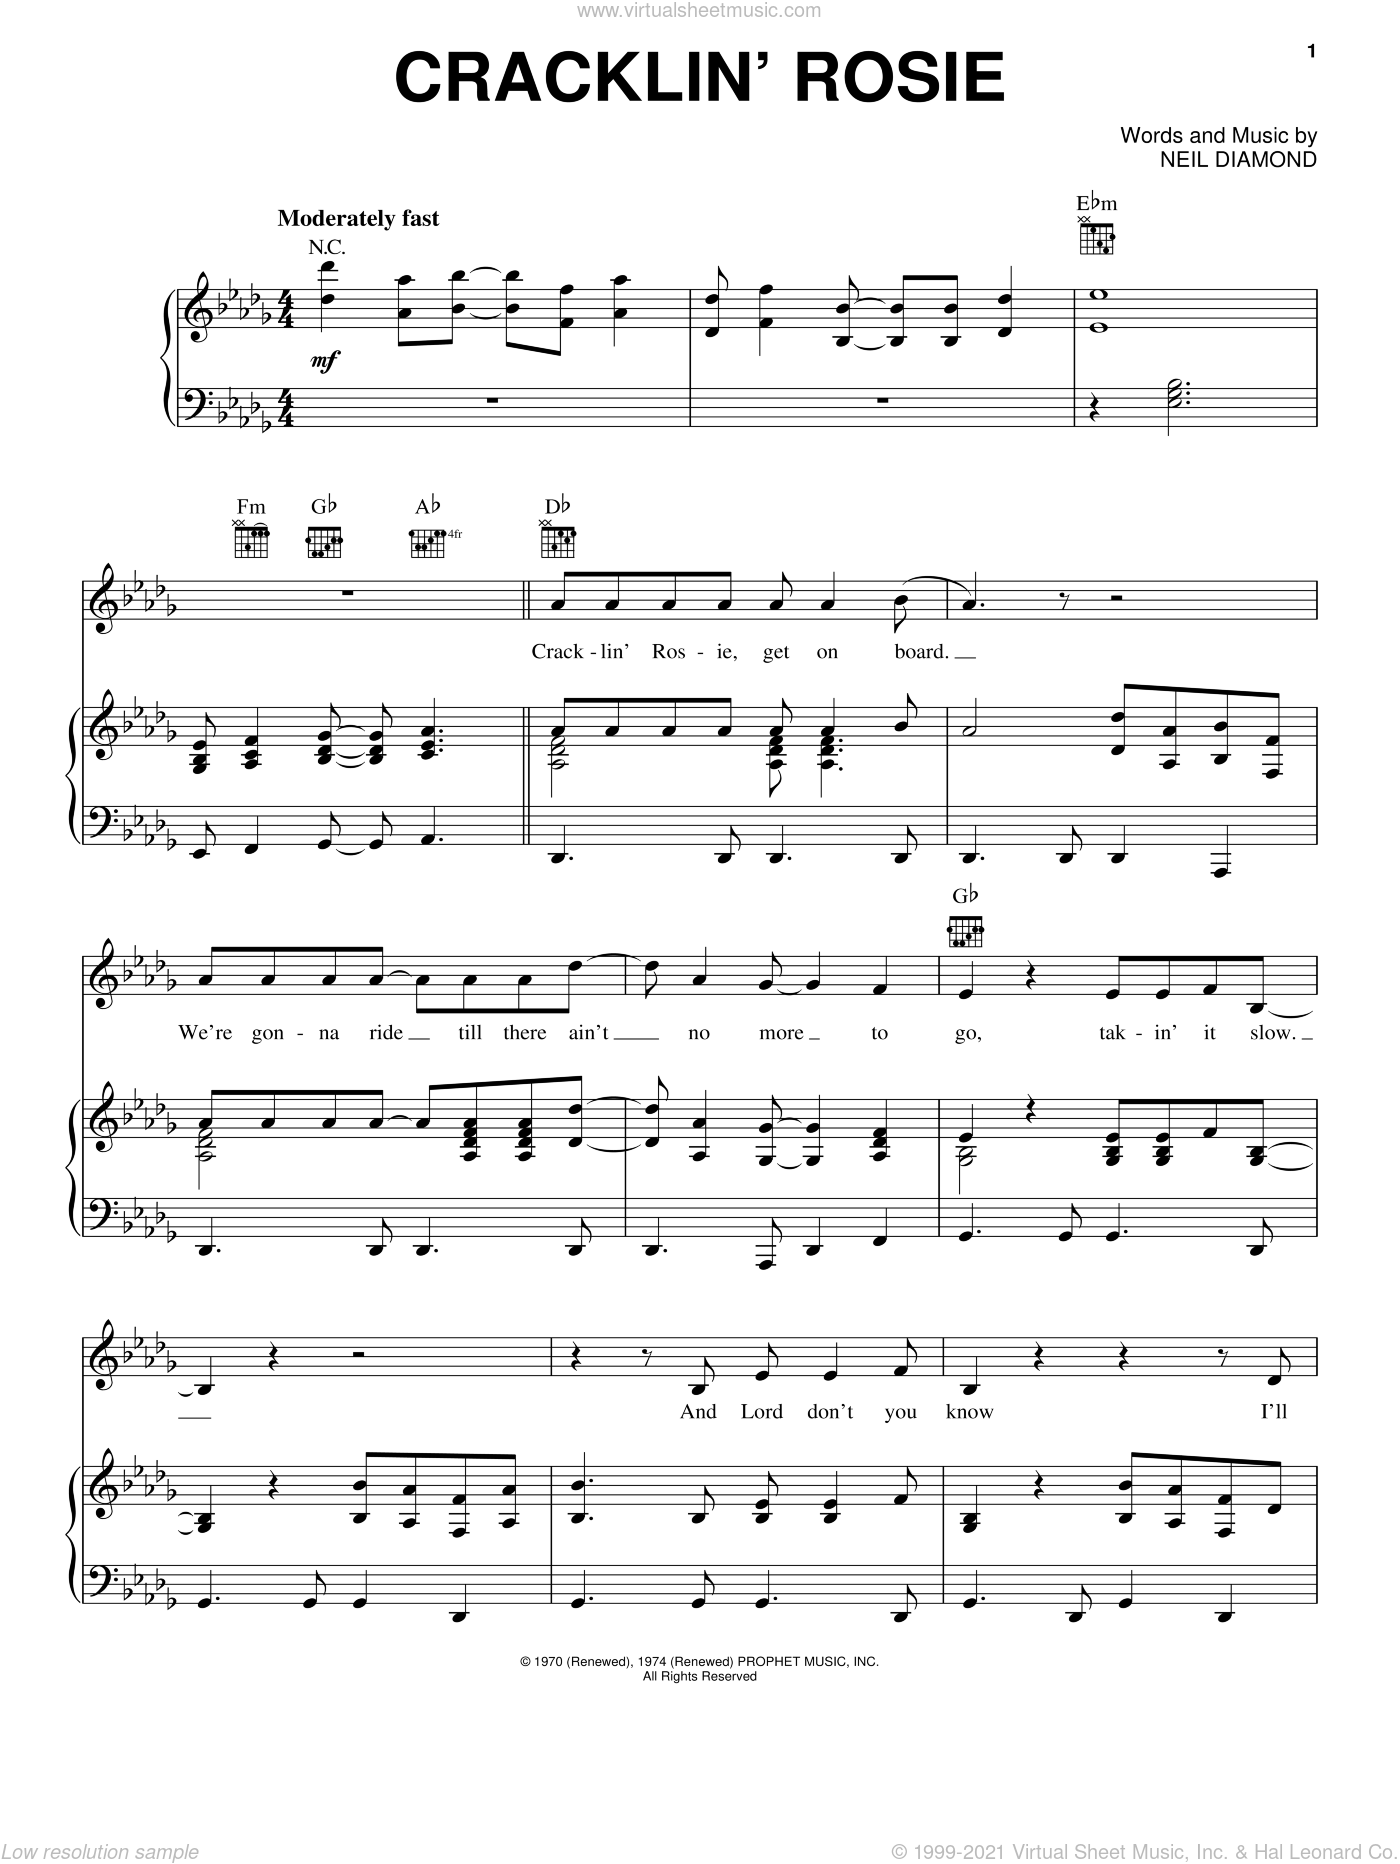 Cracklin' Rosie sheet music for voice, piano or guitar by Neil Diamond, intermediate skill level